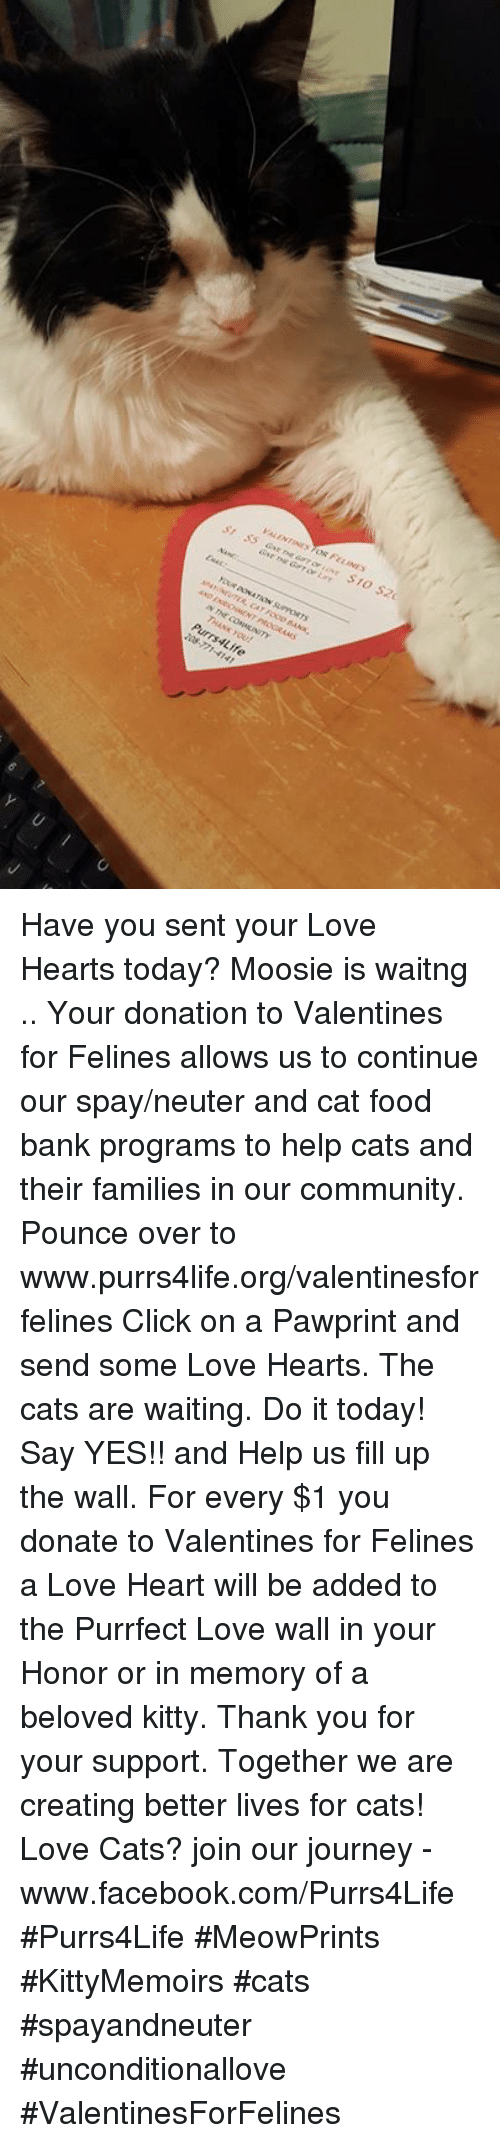 Cats, Click, and Community: VALENTINES OR FELINES  R, ATFOOD BANK.  coeMENTY  THANK YOU!  Pur rs4Life  と Have you sent your Love Hearts today?  Moosie is waitng ..   Your donation to Valentines for Felines allows us to continue our spay/neuter and cat food bank programs to help cats and their families in our community.   Pounce over to www.purrs4life.org/valentinesforfelines Click on a Pawprint and send some Love Hearts. The cats are waiting. Do it today!  Say YES!! and Help us fill up the wall. For every $1 you donate to Valentines for Felines a Love Heart will be added to the Purrfect Love wall in your Honor or in memory of a beloved kitty.  Thank you for your support. Together we are creating better lives for cats!  Love Cats? join our journey - www.facebook.com/Purrs4Life #Purrs4Life #MeowPrints #KittyMemoirs #cats #spayandneuter #unconditionallove #ValentinesForFelines